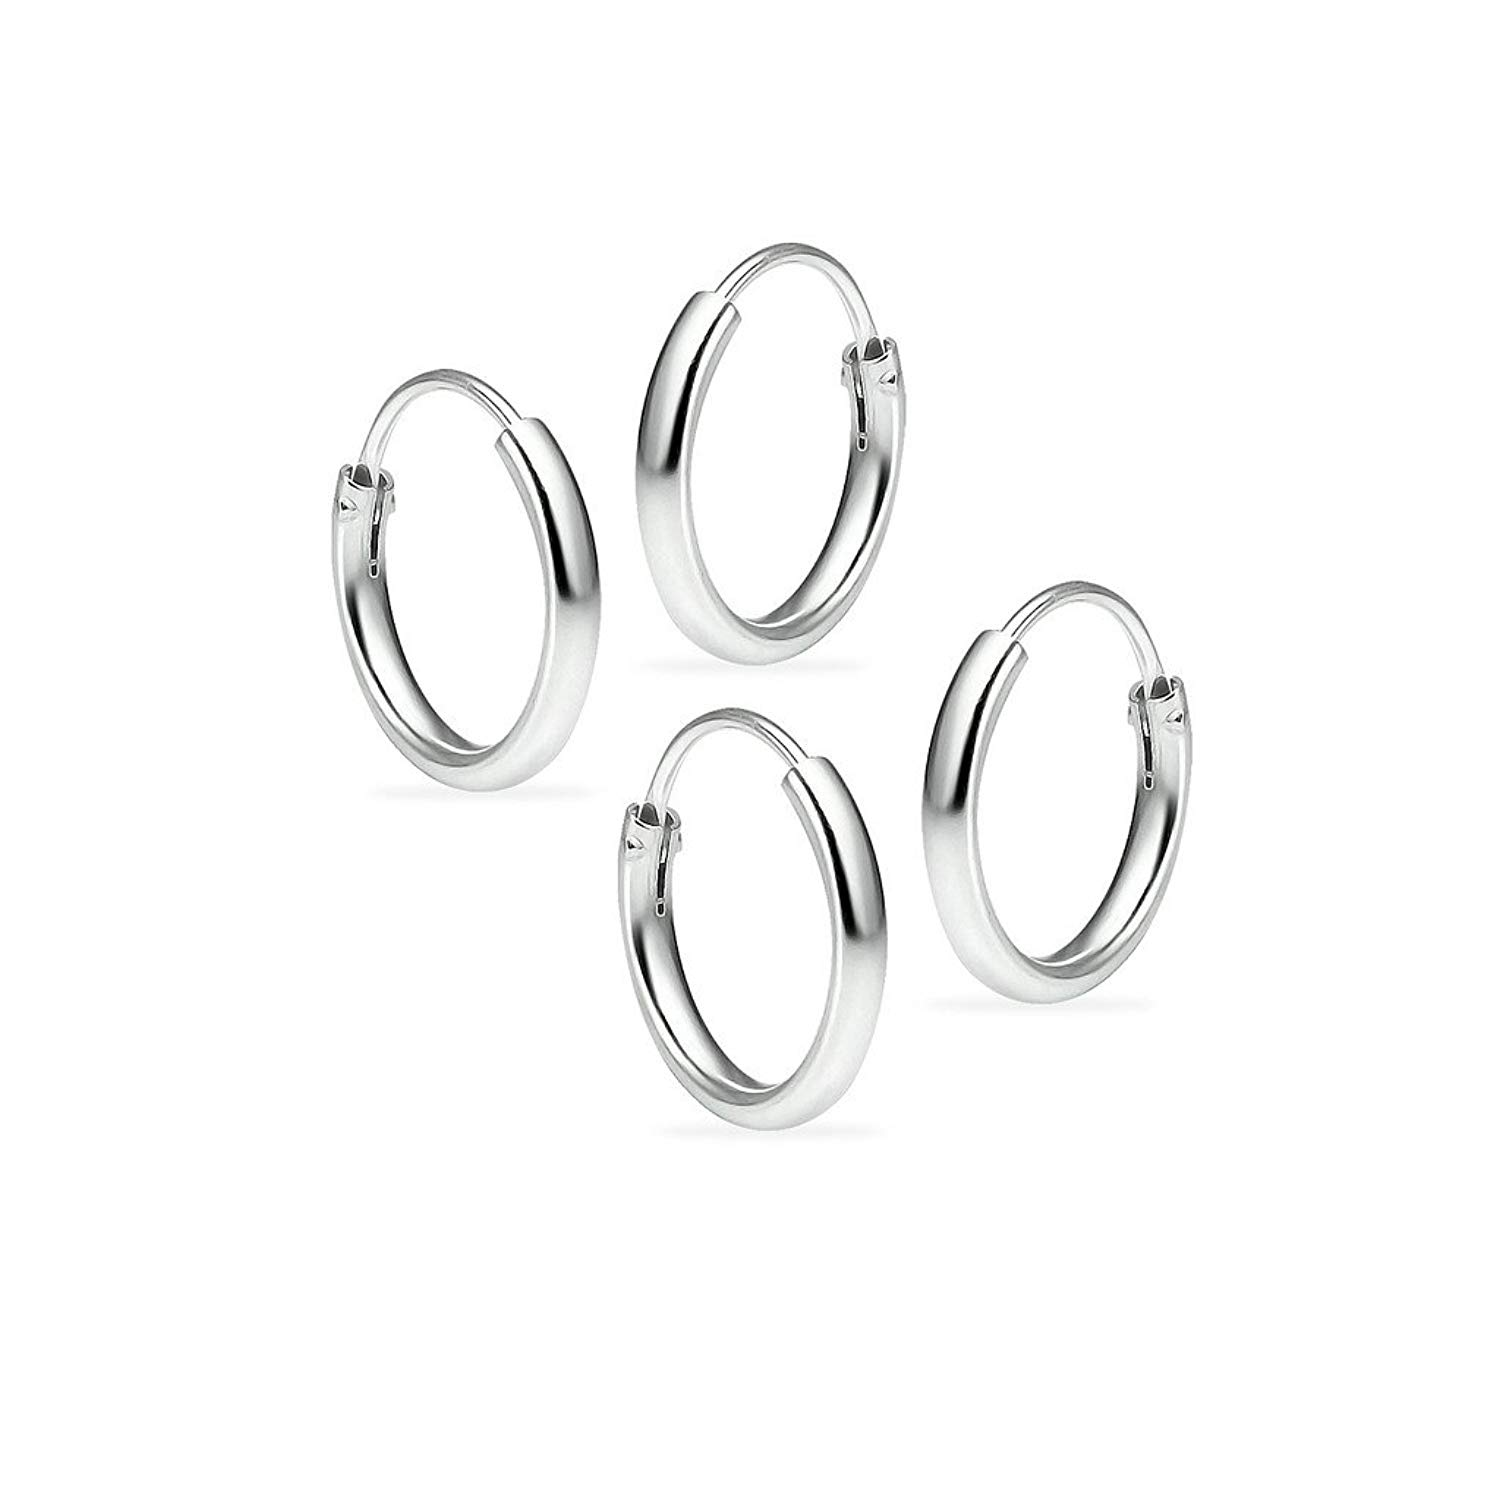 Get Quotations Set Of Two Sterling Silver Small Endless 1 2mm X 10mm Lightweight Thin Round Uni Hoop